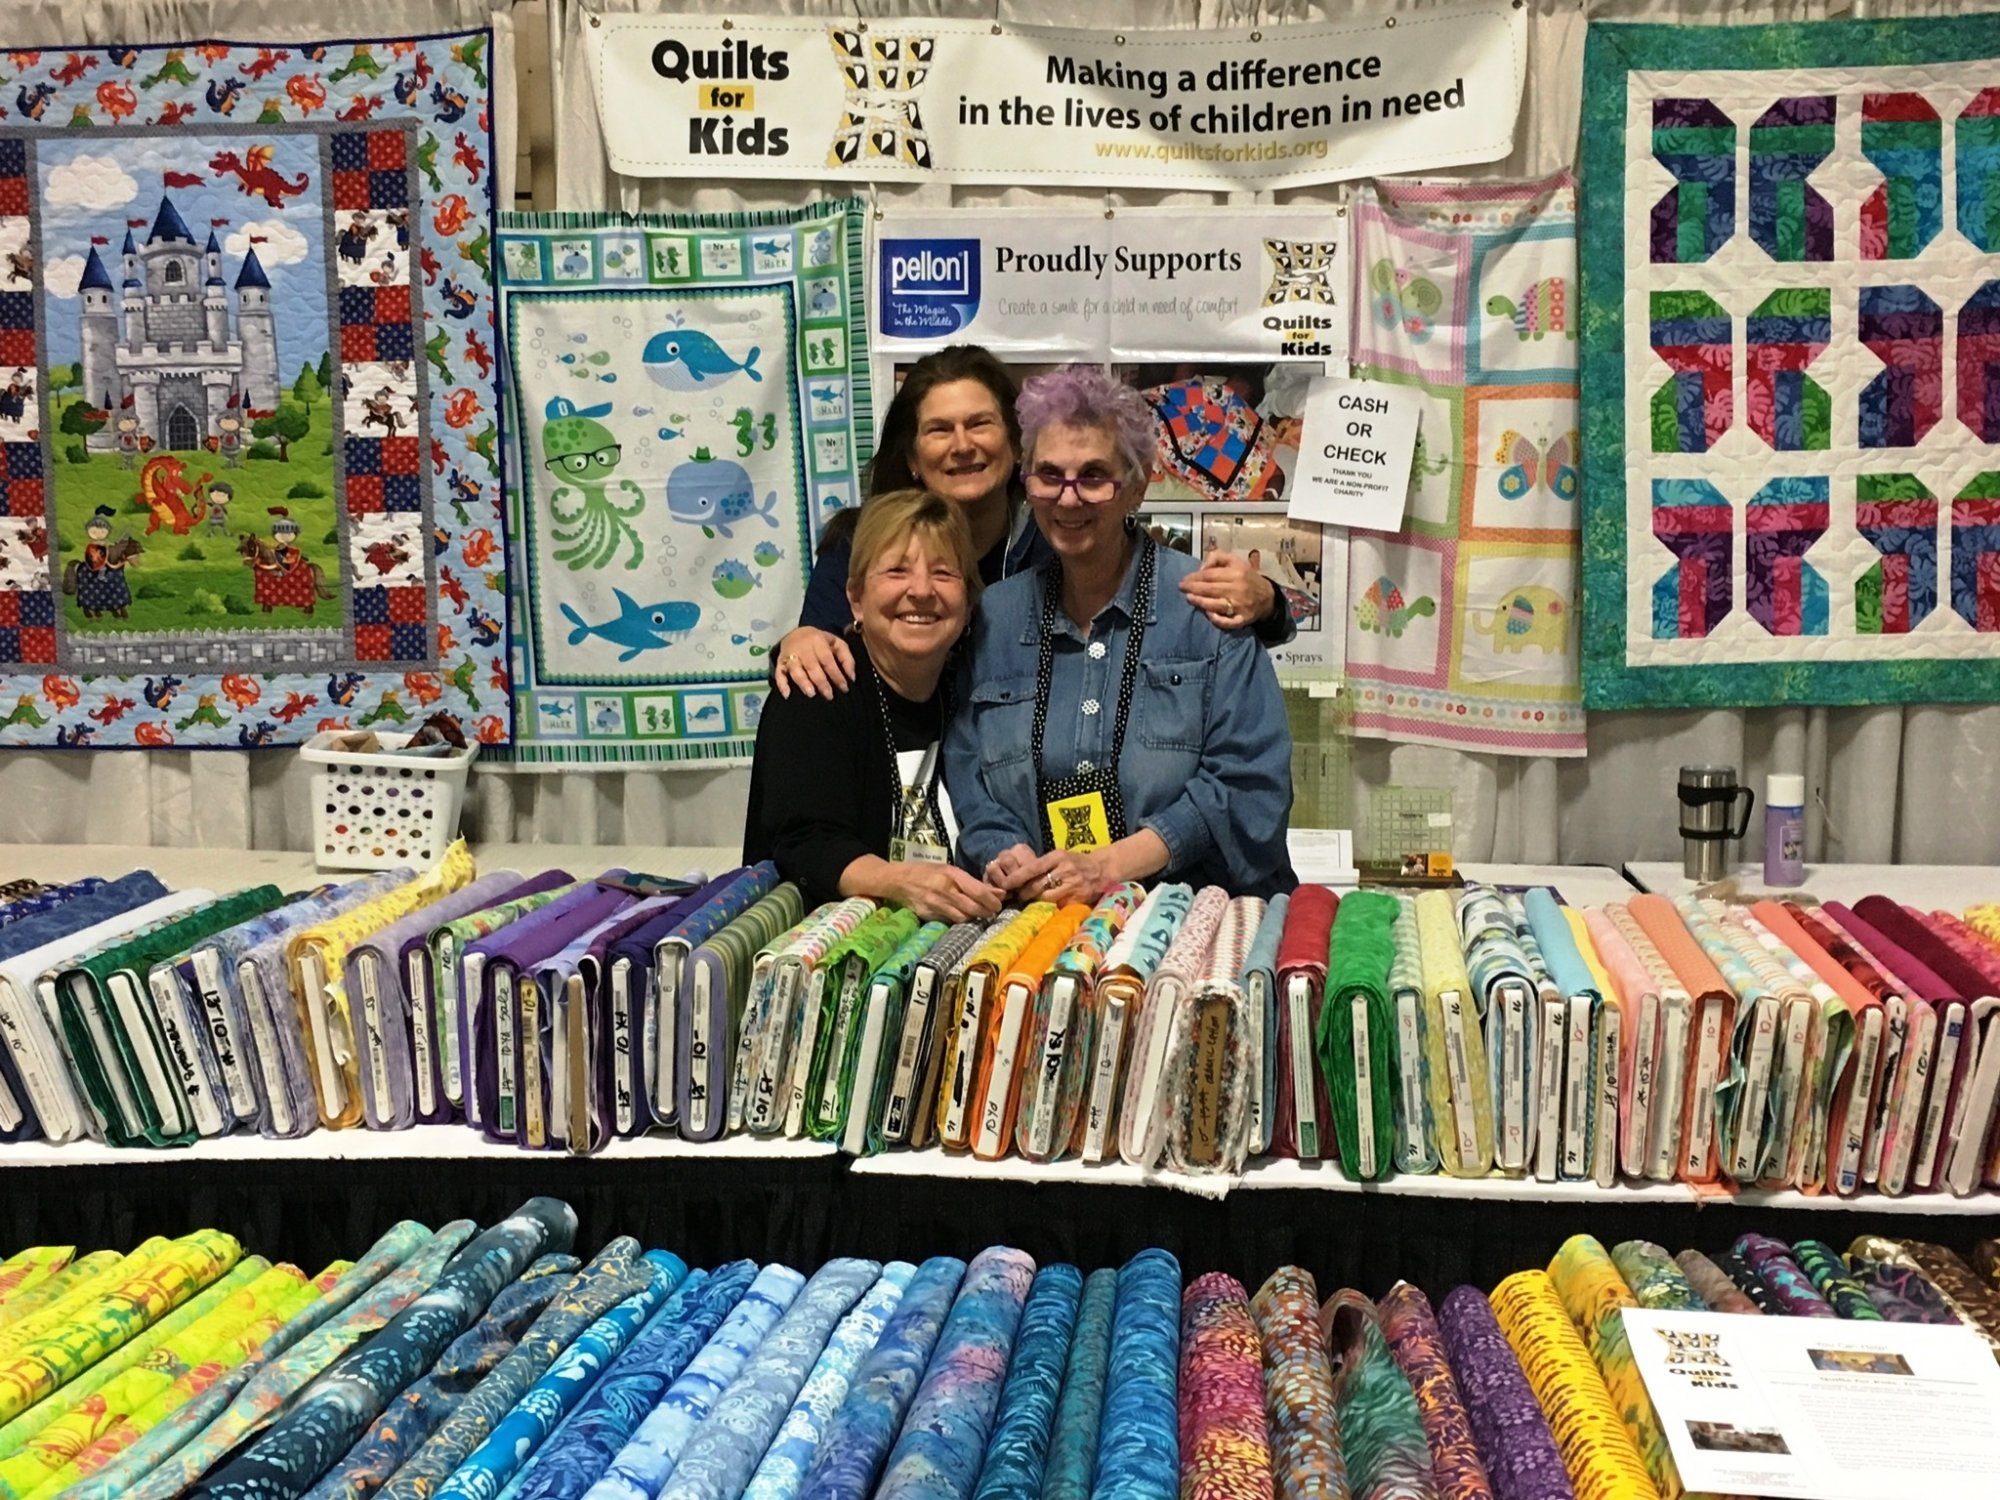 One Of The Best Parts Of Being At The Mancuso Quilt Fest In New Jersey Is  Meeting Some Of Our Amazing Volunteer Quilters Some Are Younger Than  Others